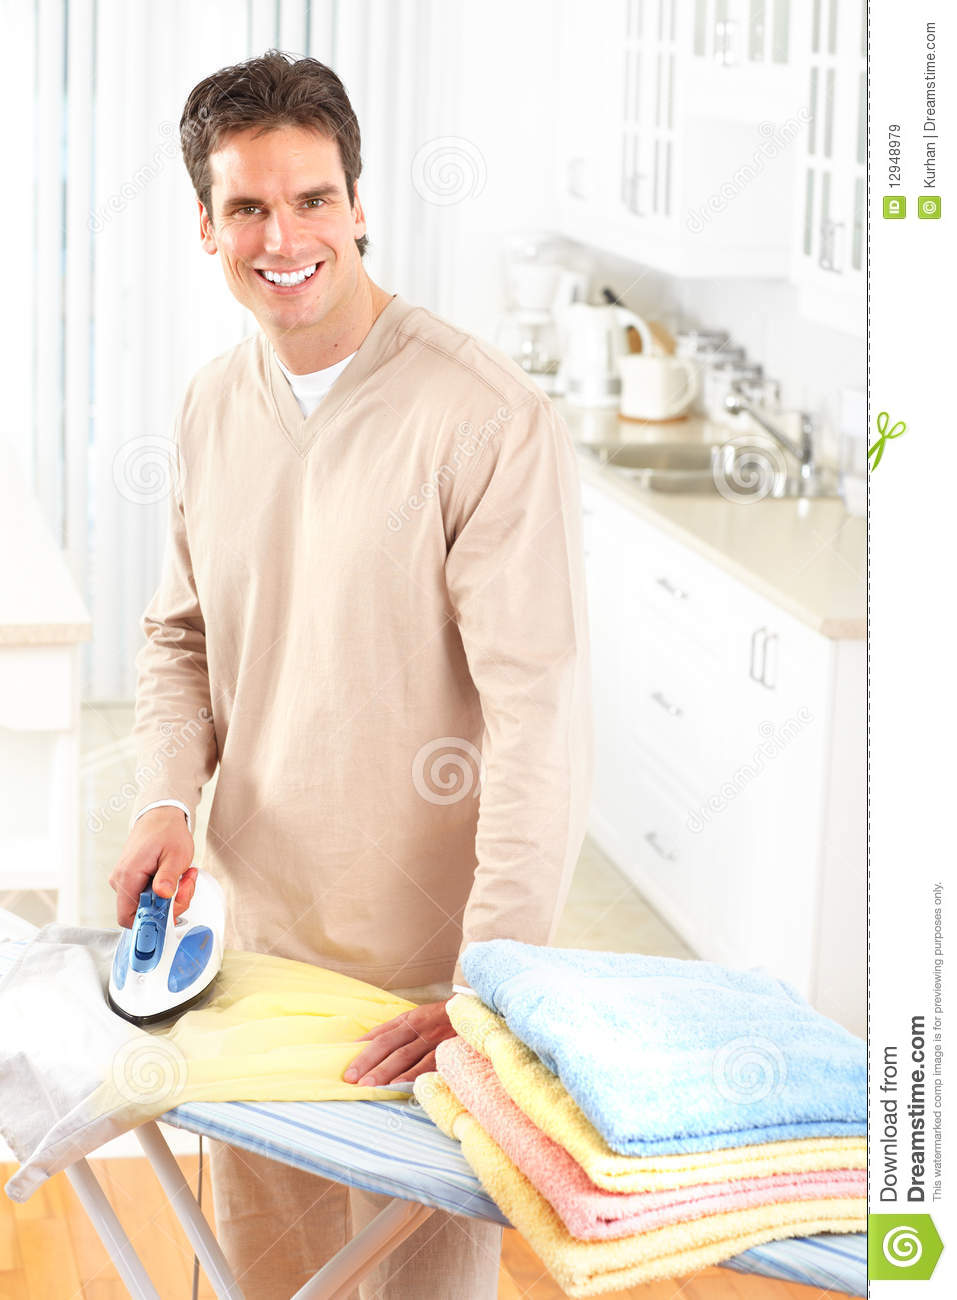 Man Ironing Clothes Royalty Free Stock Images - Image ...